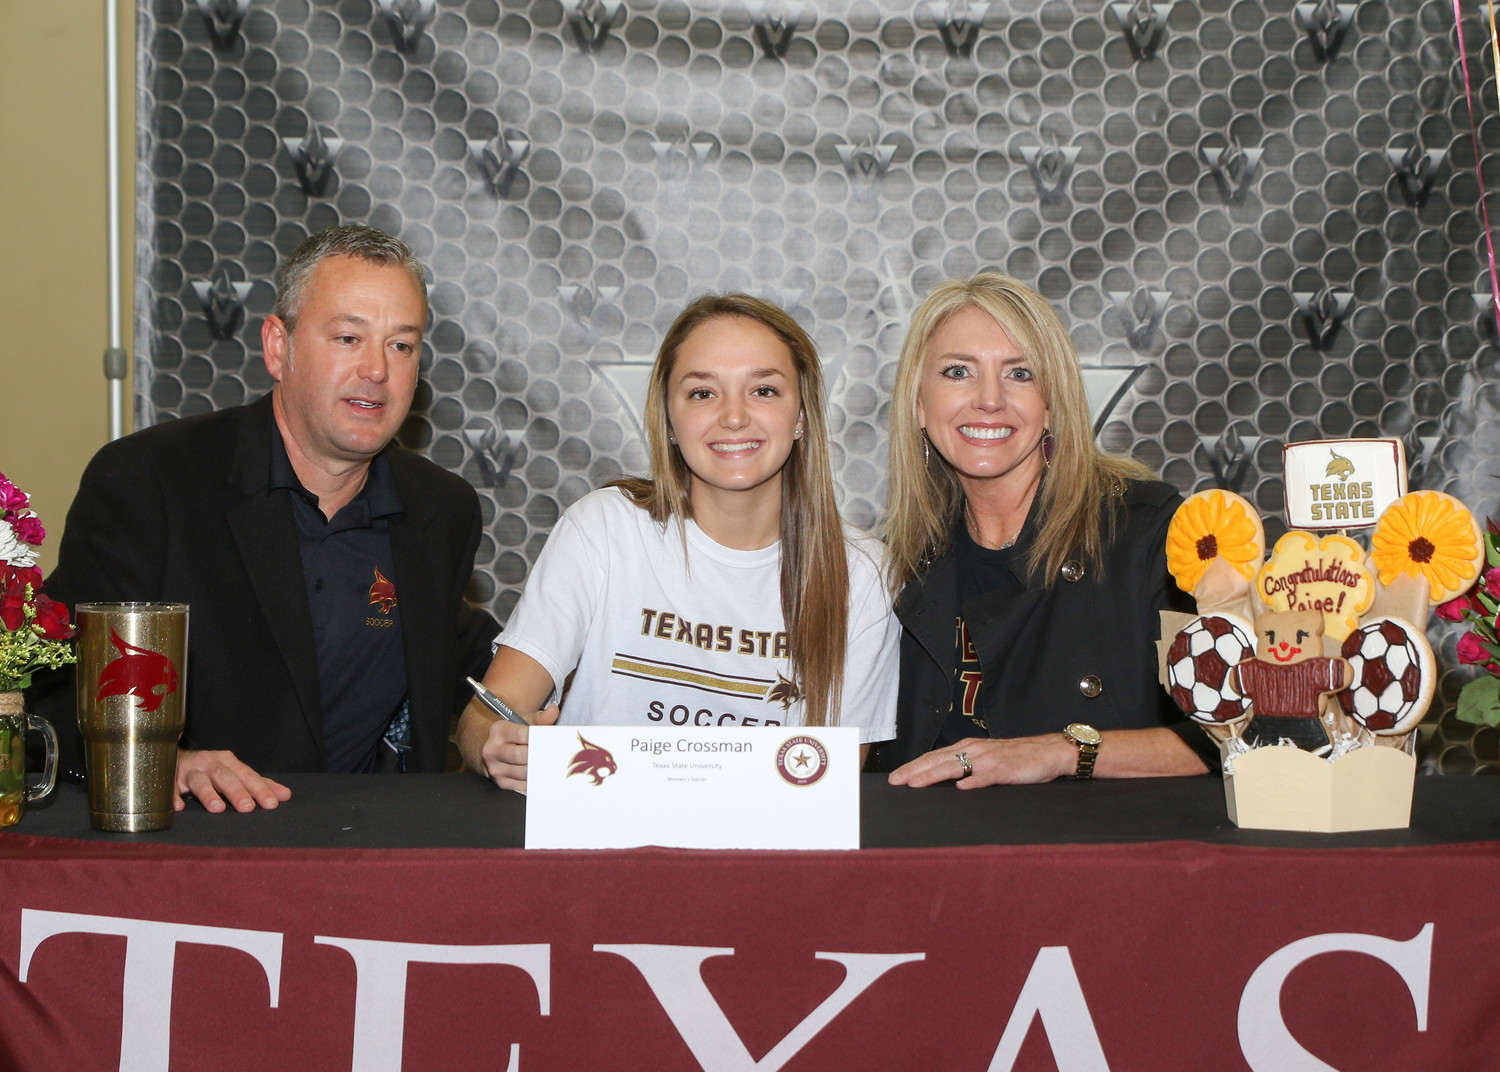 Paige Crossman signed a letter of intent to play soccer at Texas State University during a signing day ceremony at Vandegrift High School on February 7, 2018.